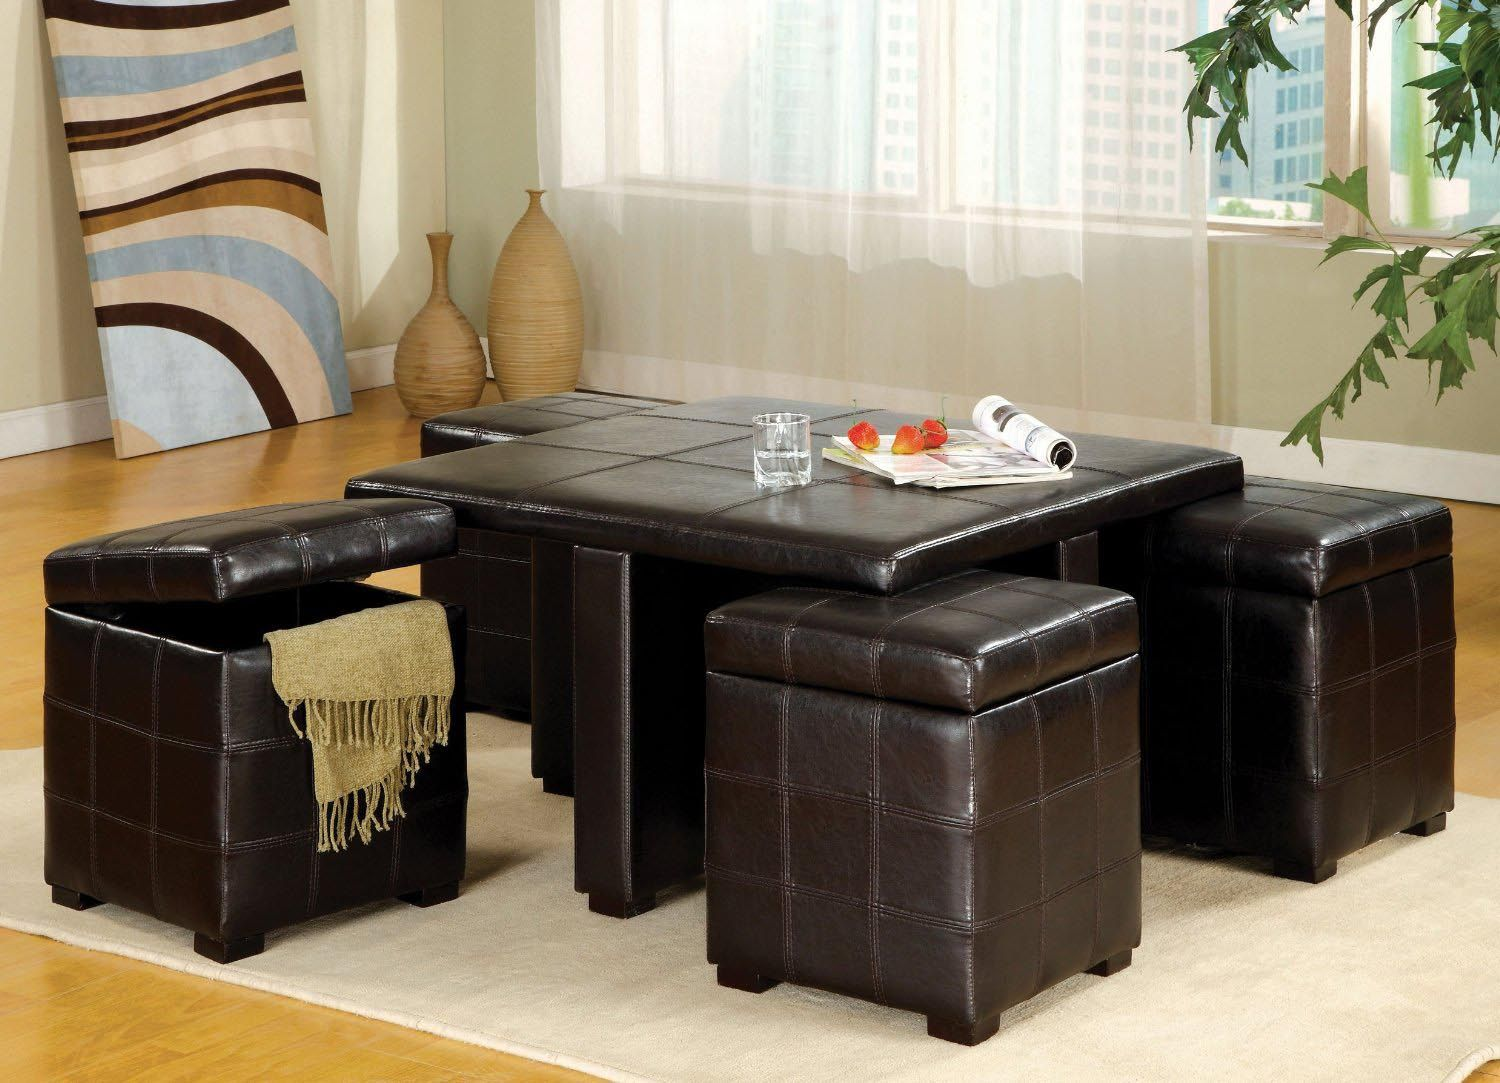 Glass Coffee Table With Stools Underneath Coffee Table With